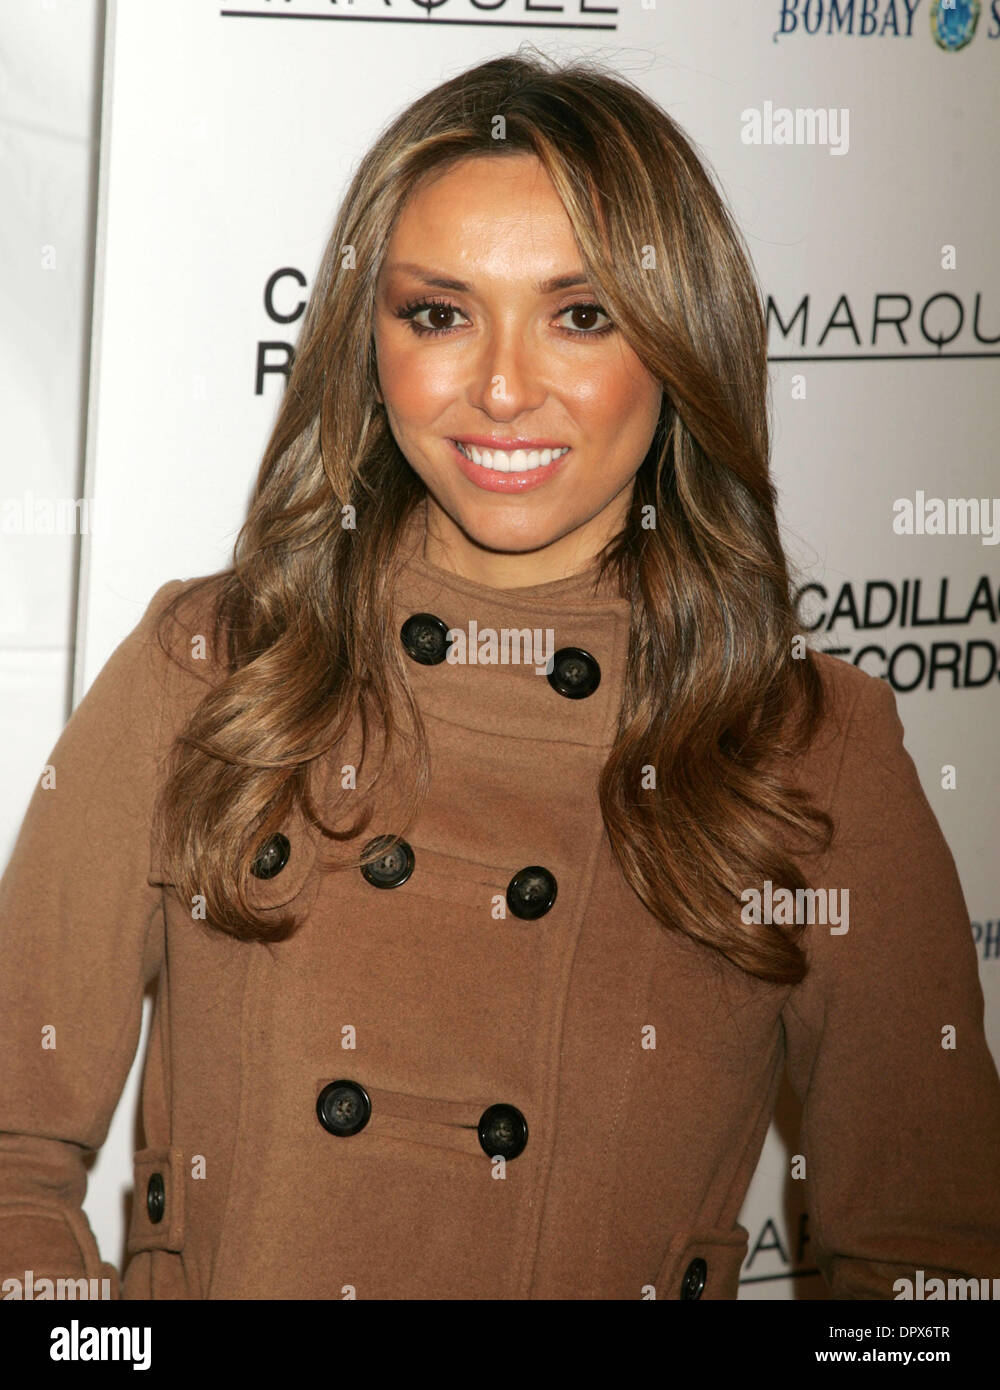 Dec 01, 2008 - New York, NY, USA - E! News anchor GIULIANA